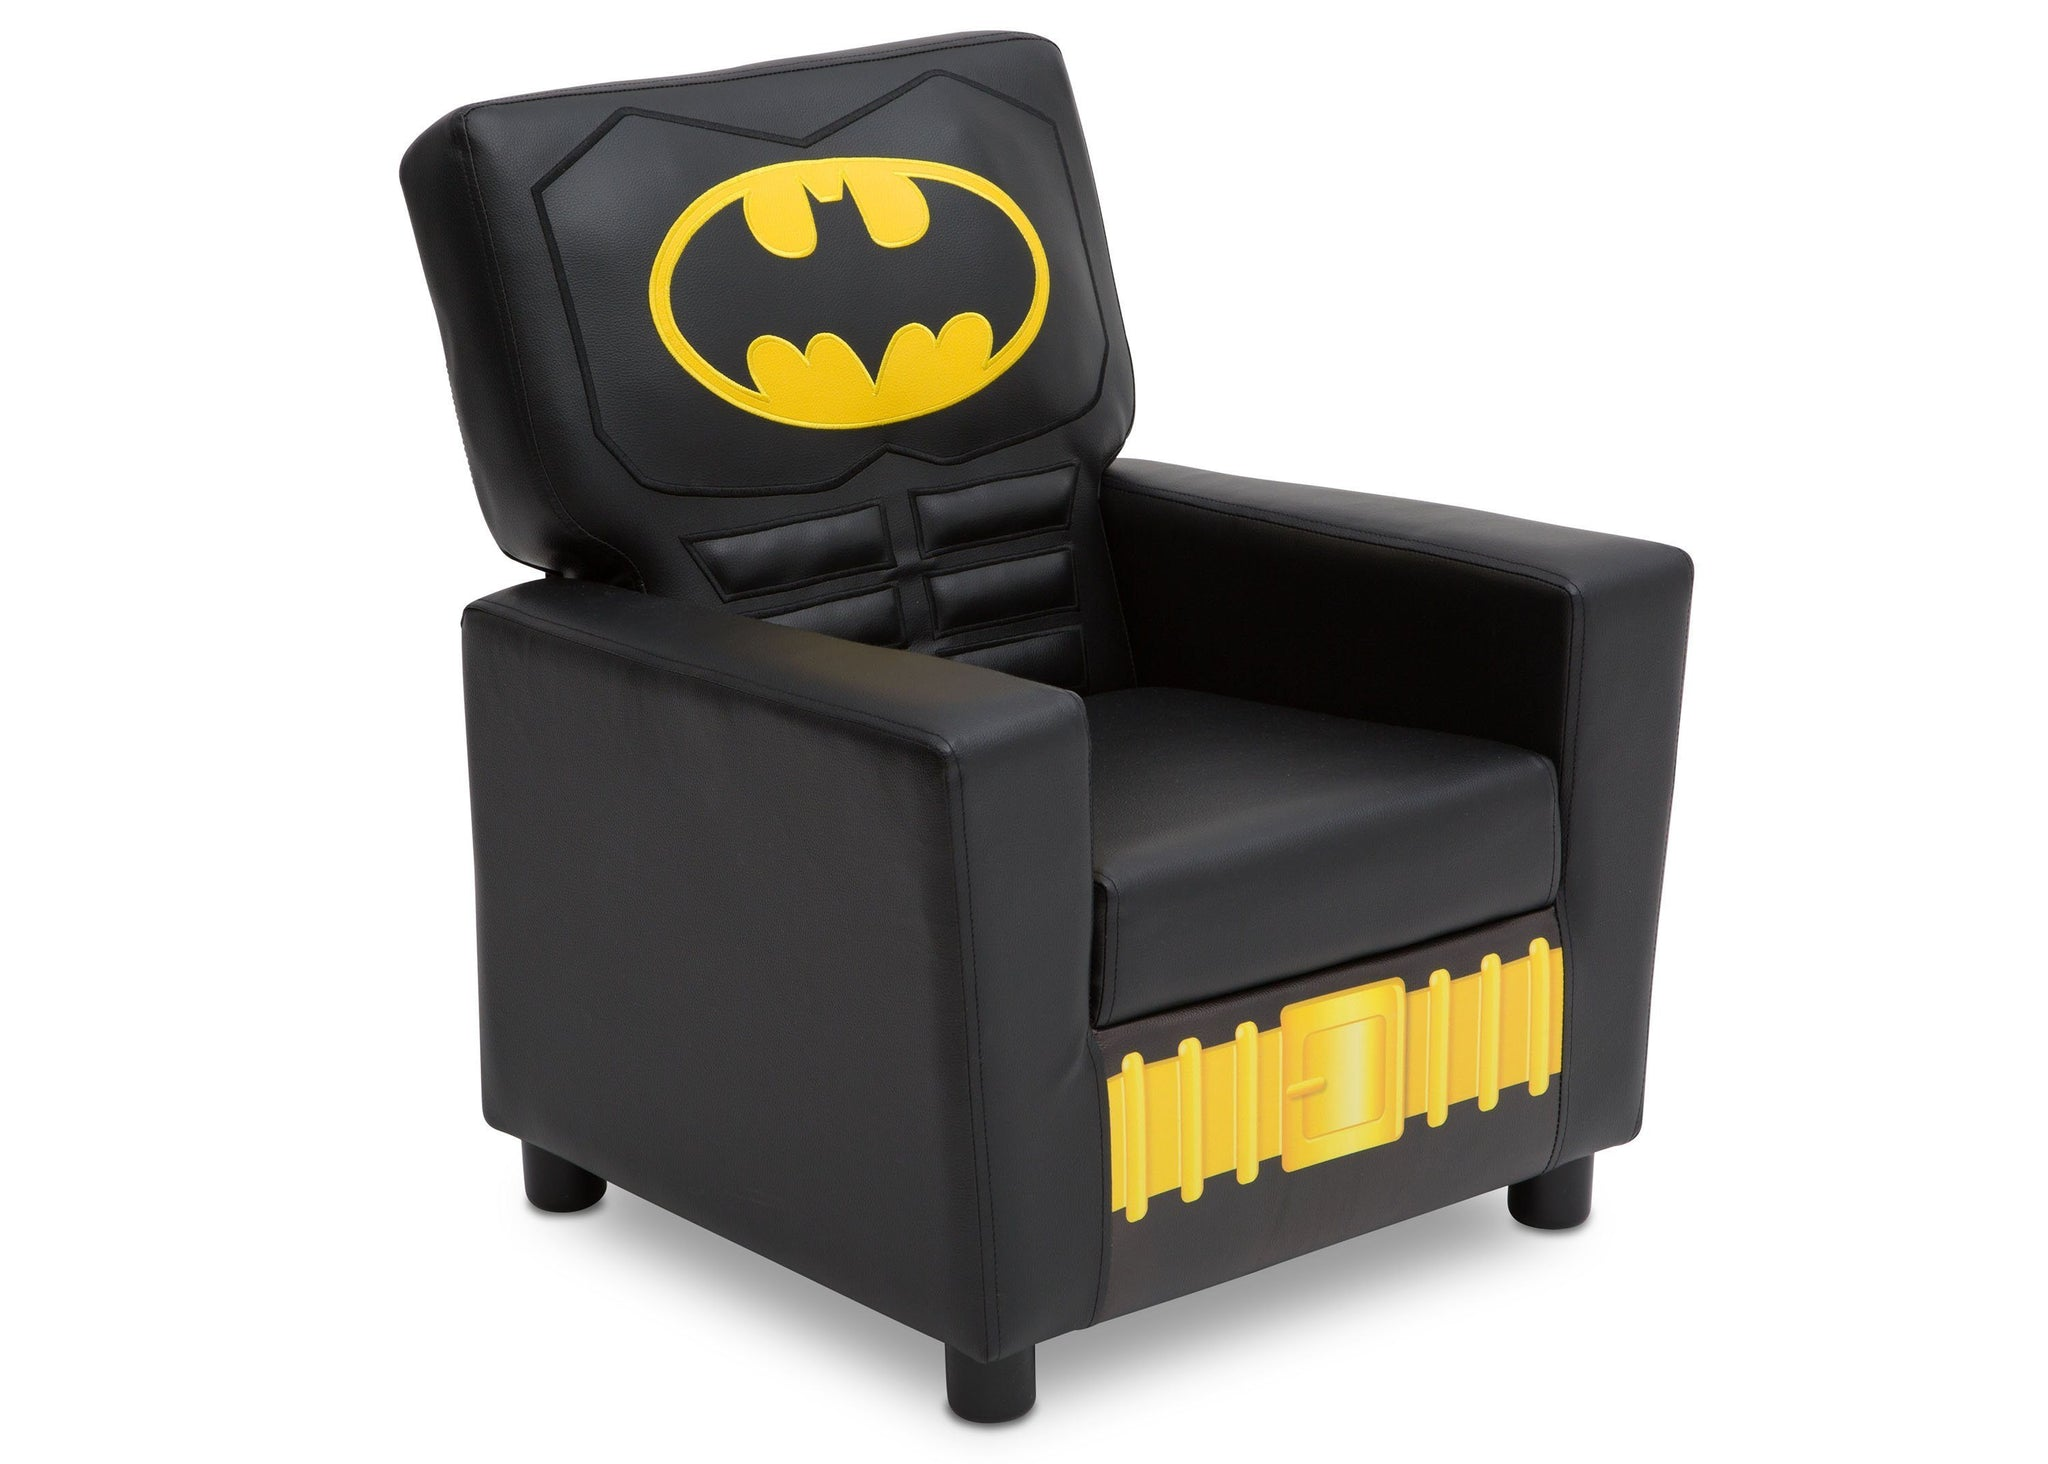 Delta Children DC Comics Batman (1200) High Back Upholstered Chair, Right Angle, a1a